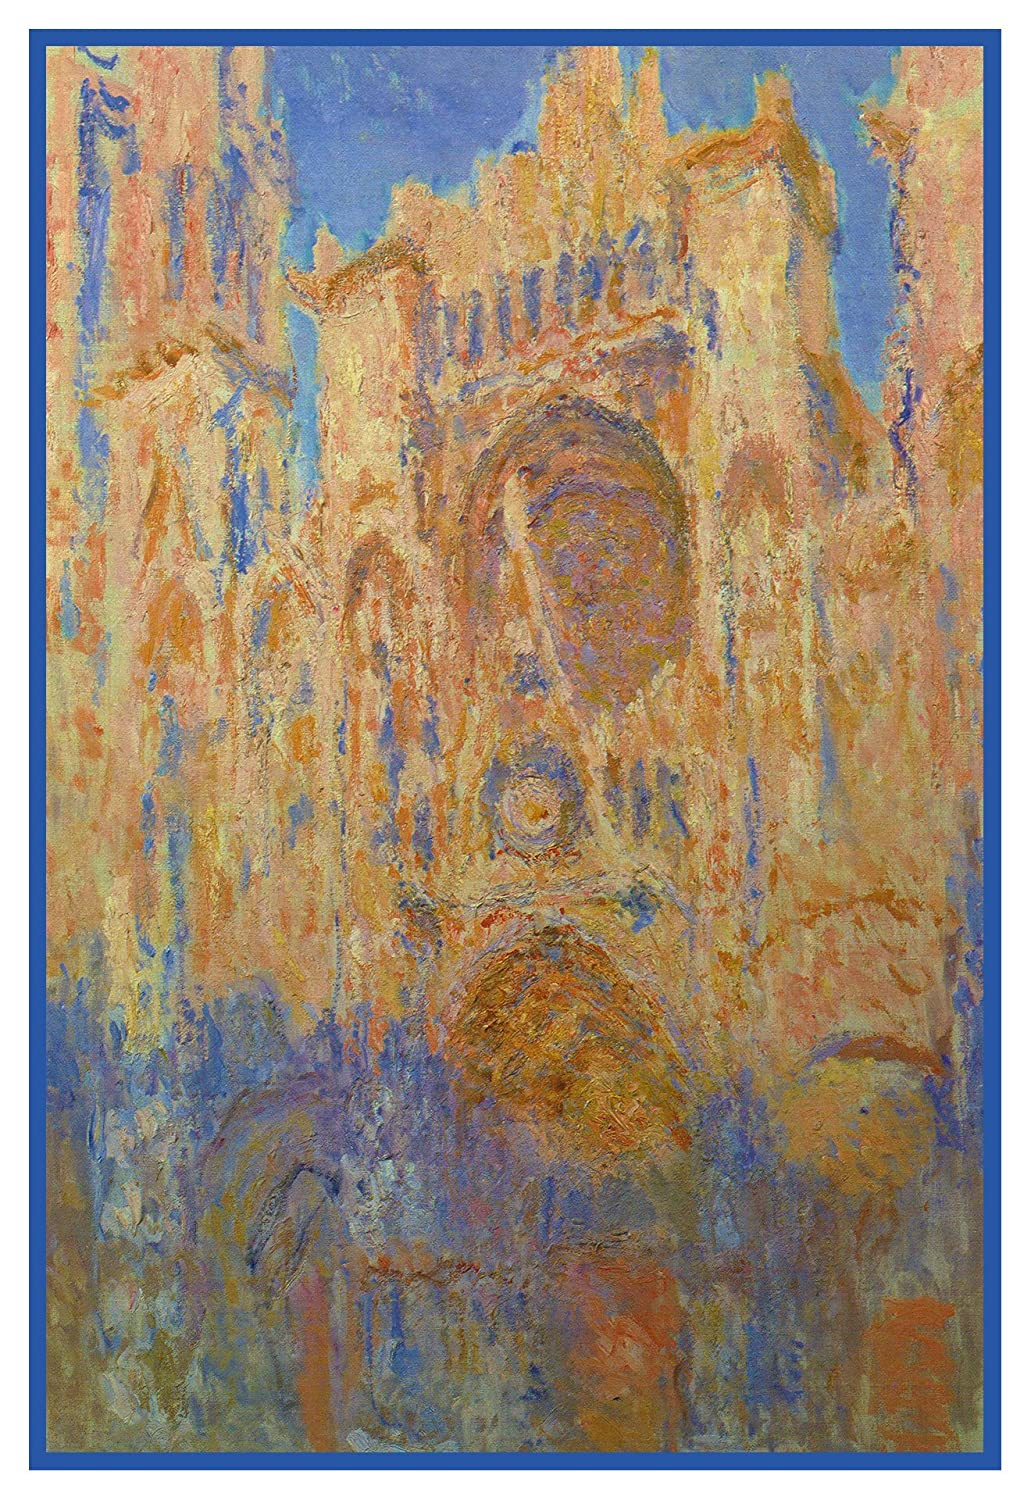 Orenco Originals Rouen Cathedral France by Claude Monet Counted Cross Stitch Pattern